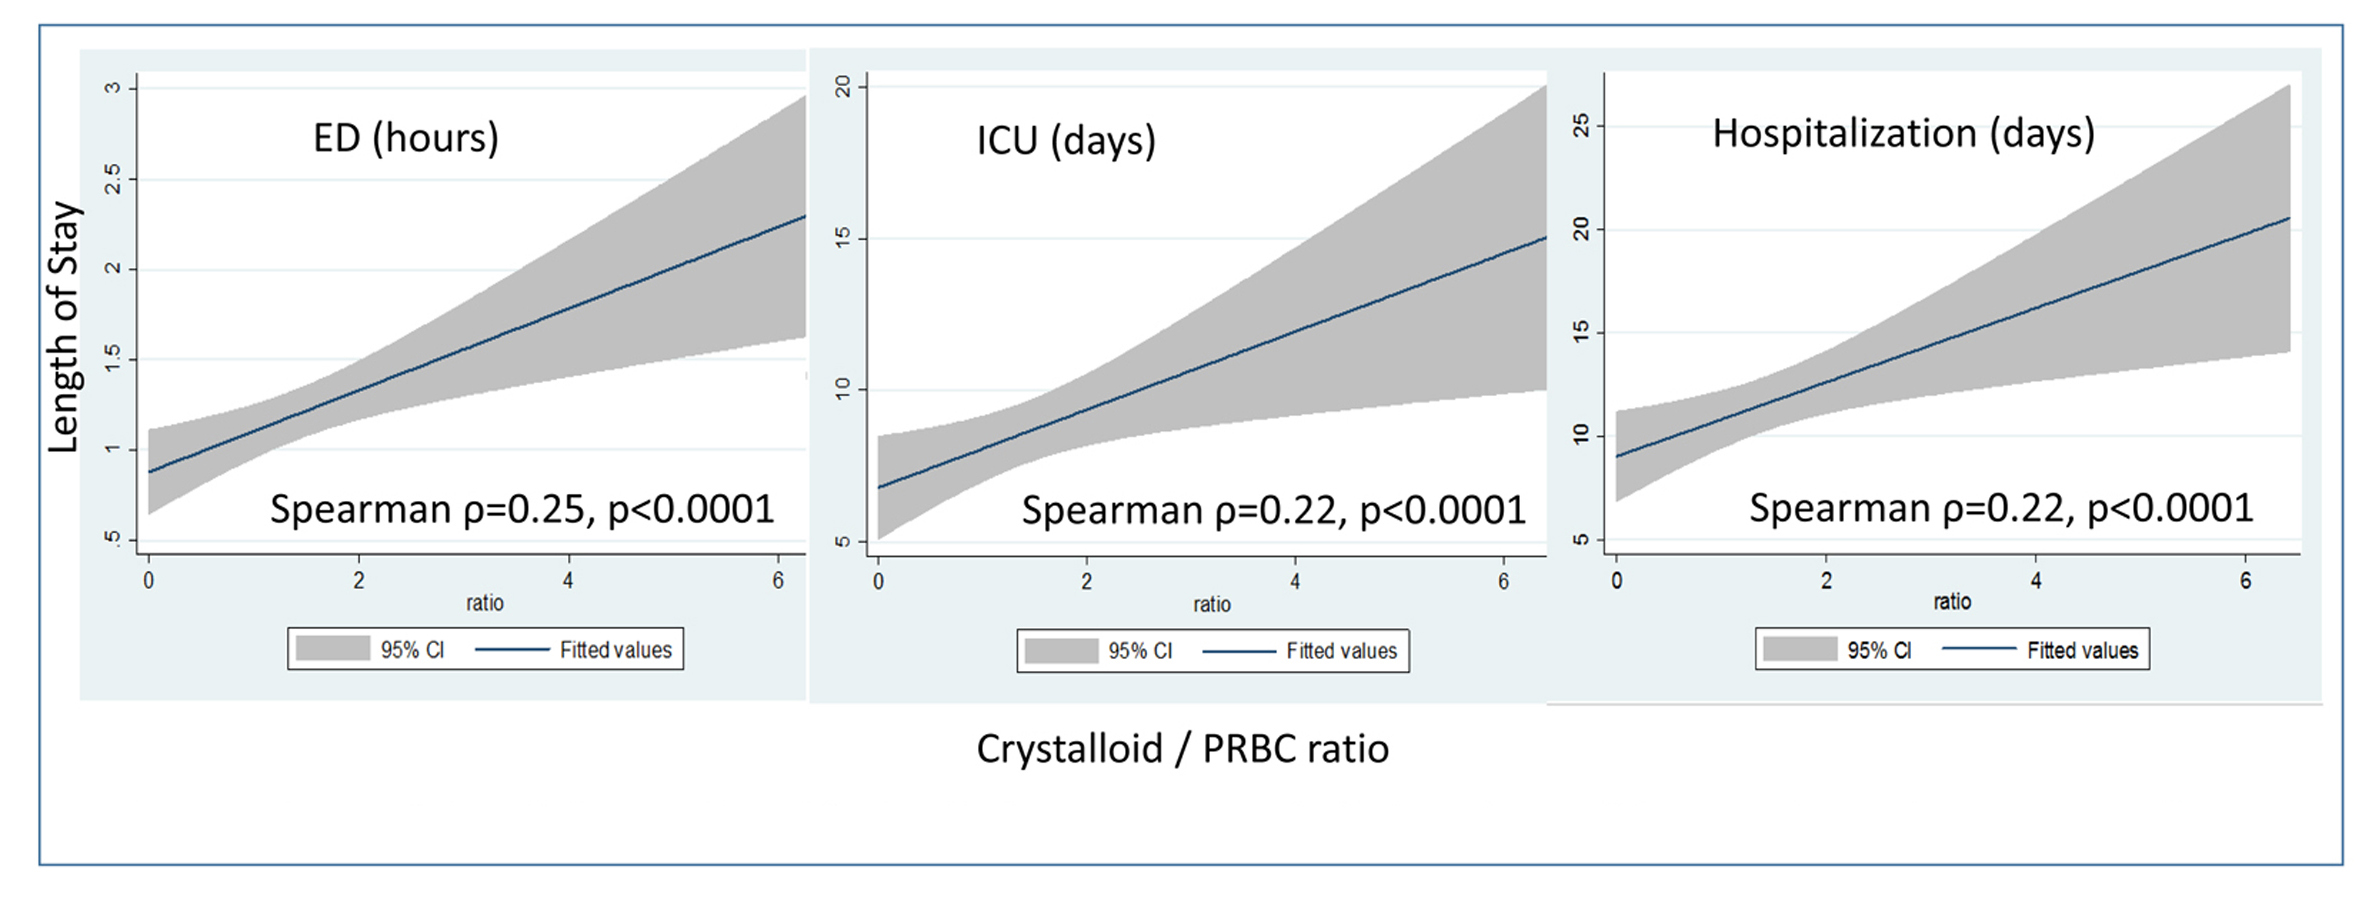 Benefits Of Initial Limited Crystalloid Resuscitation In